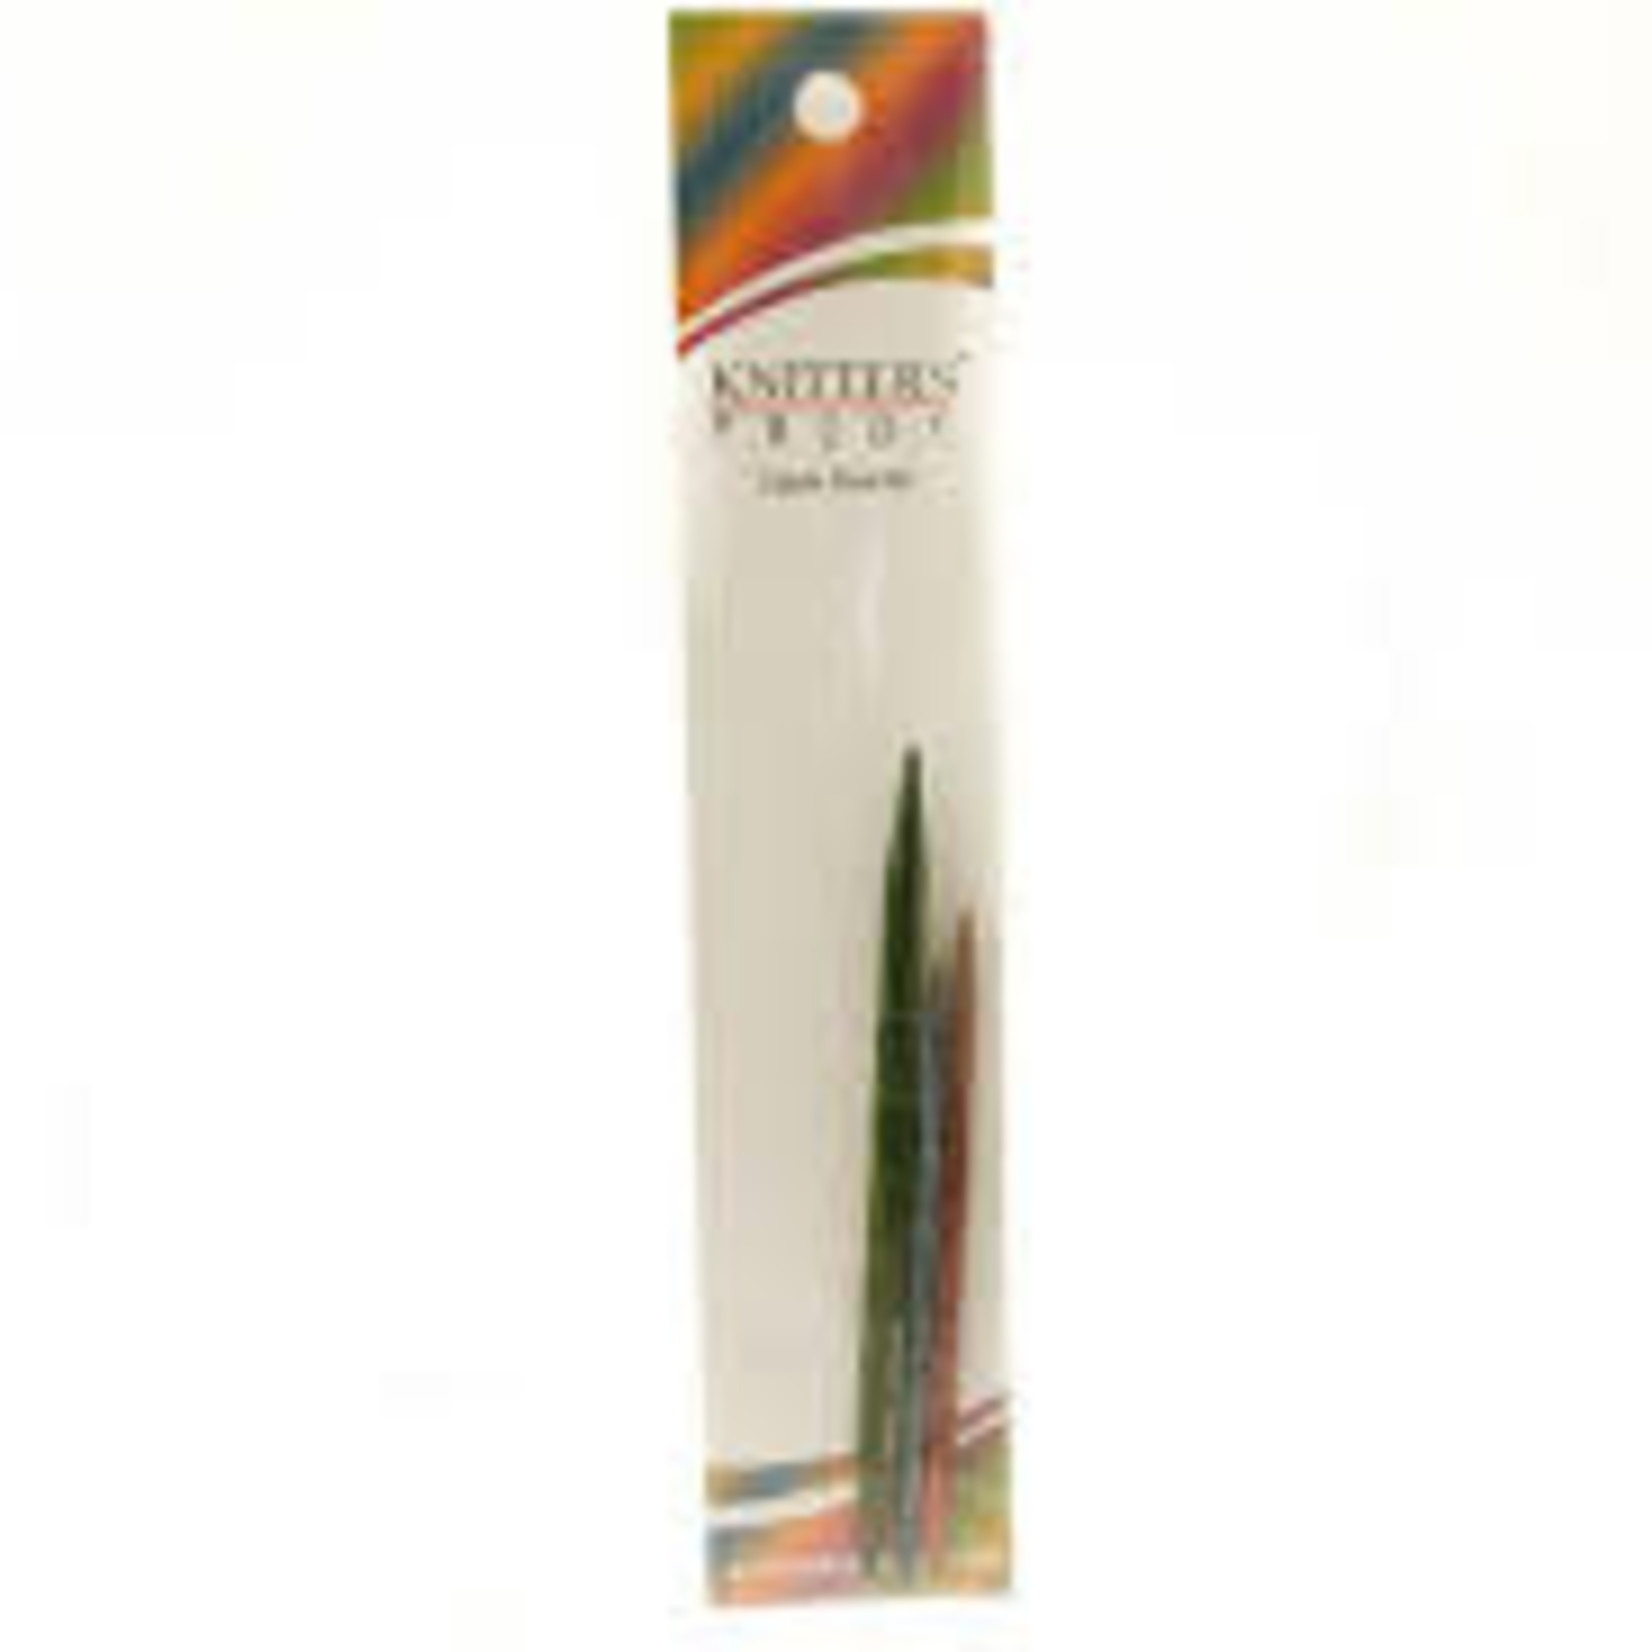 Knitter's Pride Dreamz Cable Needle Set